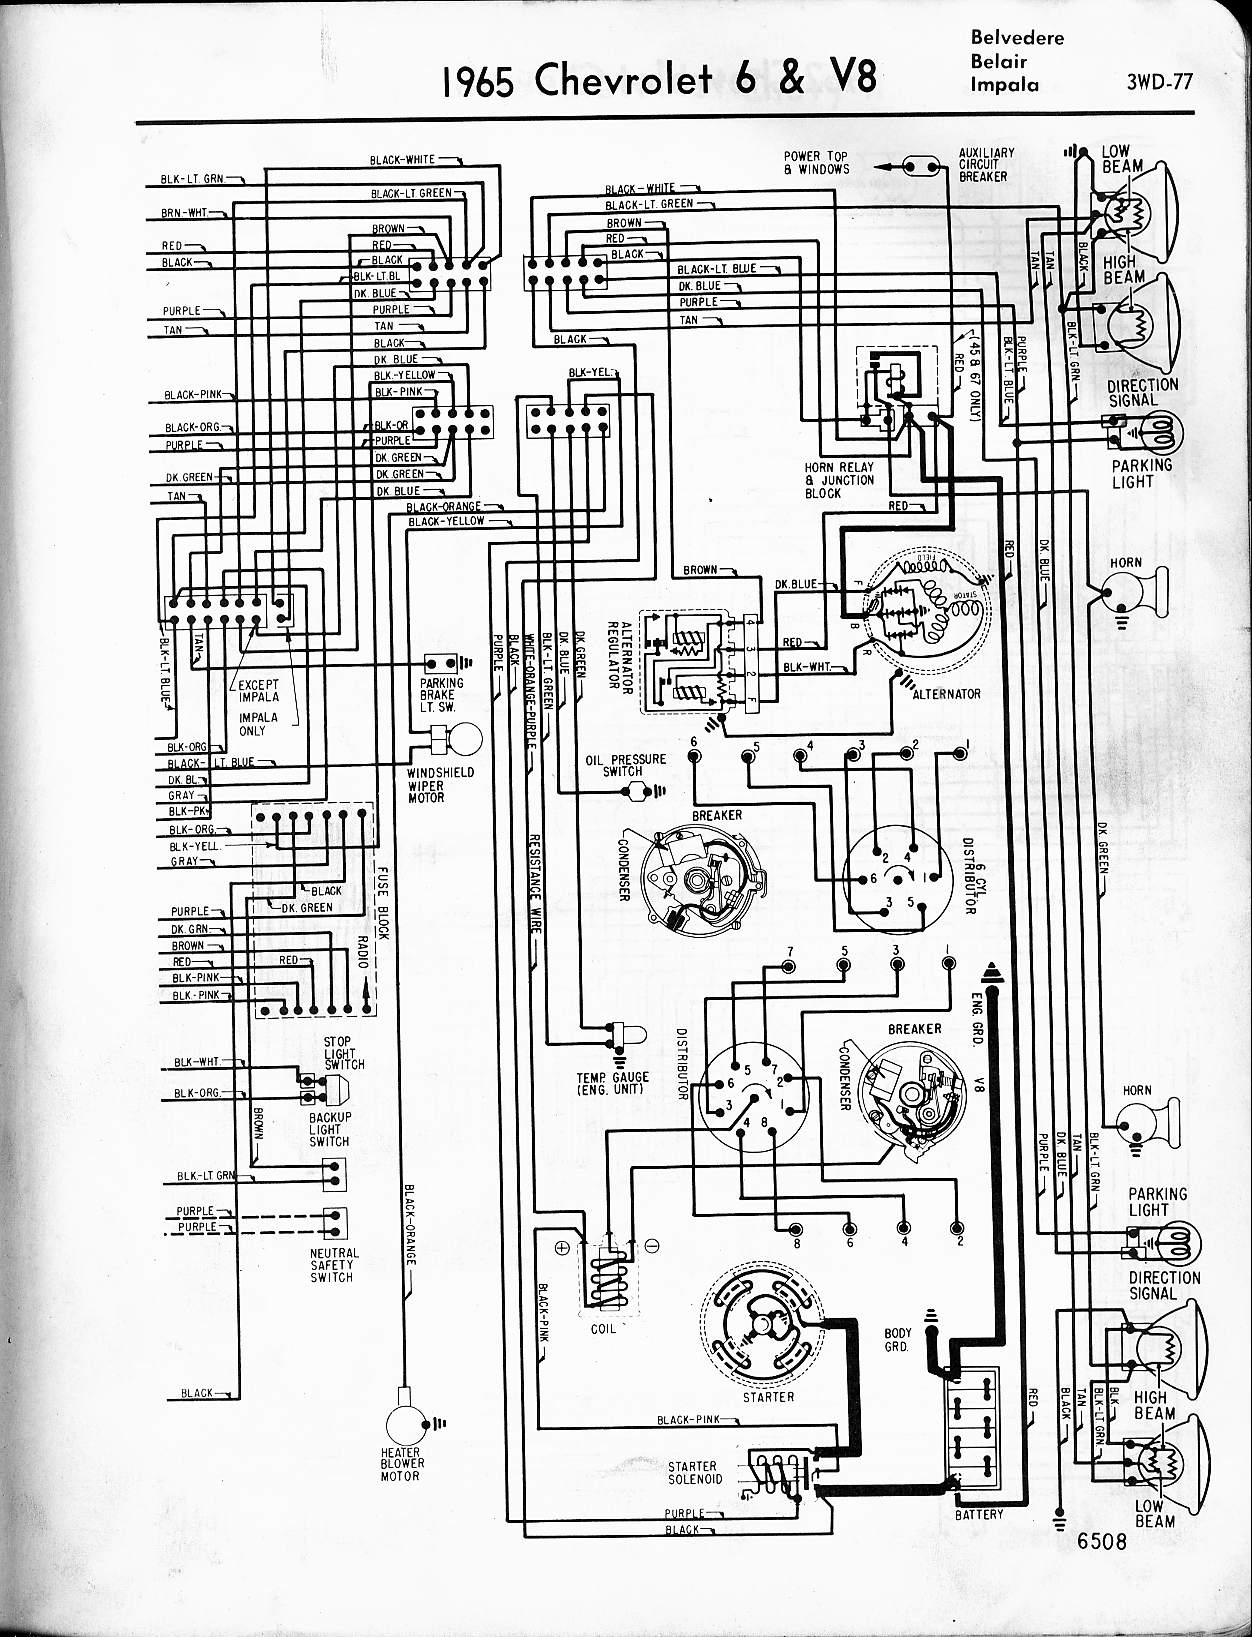 MWireChev65_3WD 077 chevy diagrams 1970 chevelle dash wiring diagram at cos-gaming.co